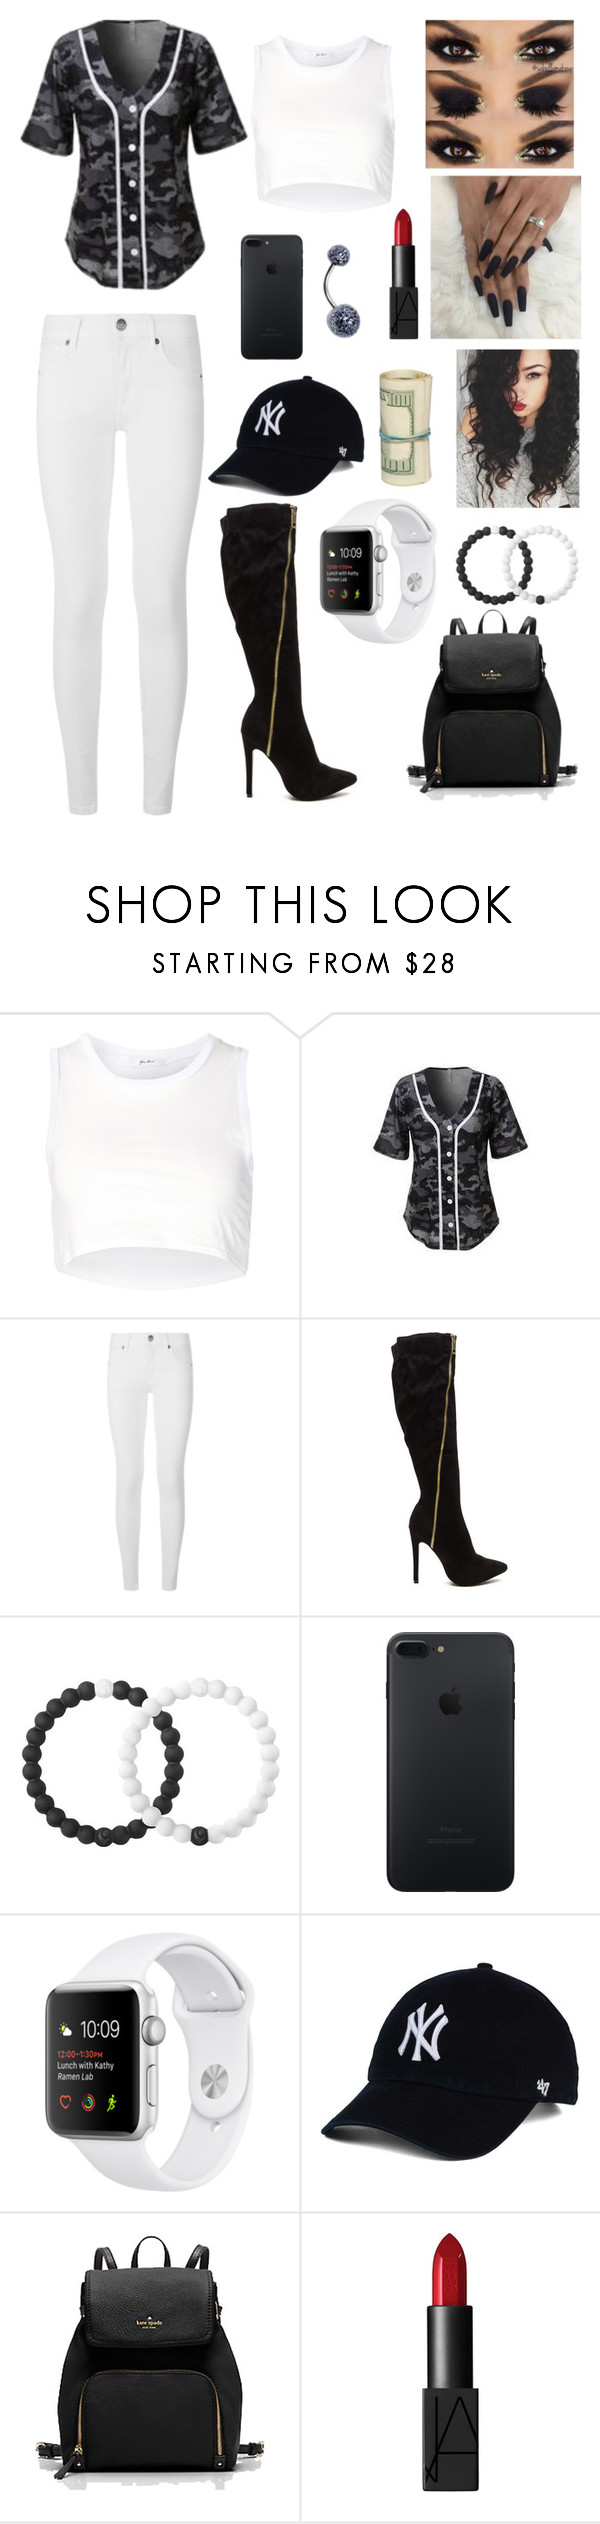 """Untitled #316"" by brie-karitsa-luciano on Polyvore featuring Julien David, LE3NO, Burberry, Lokai and NARS Cosmetics"